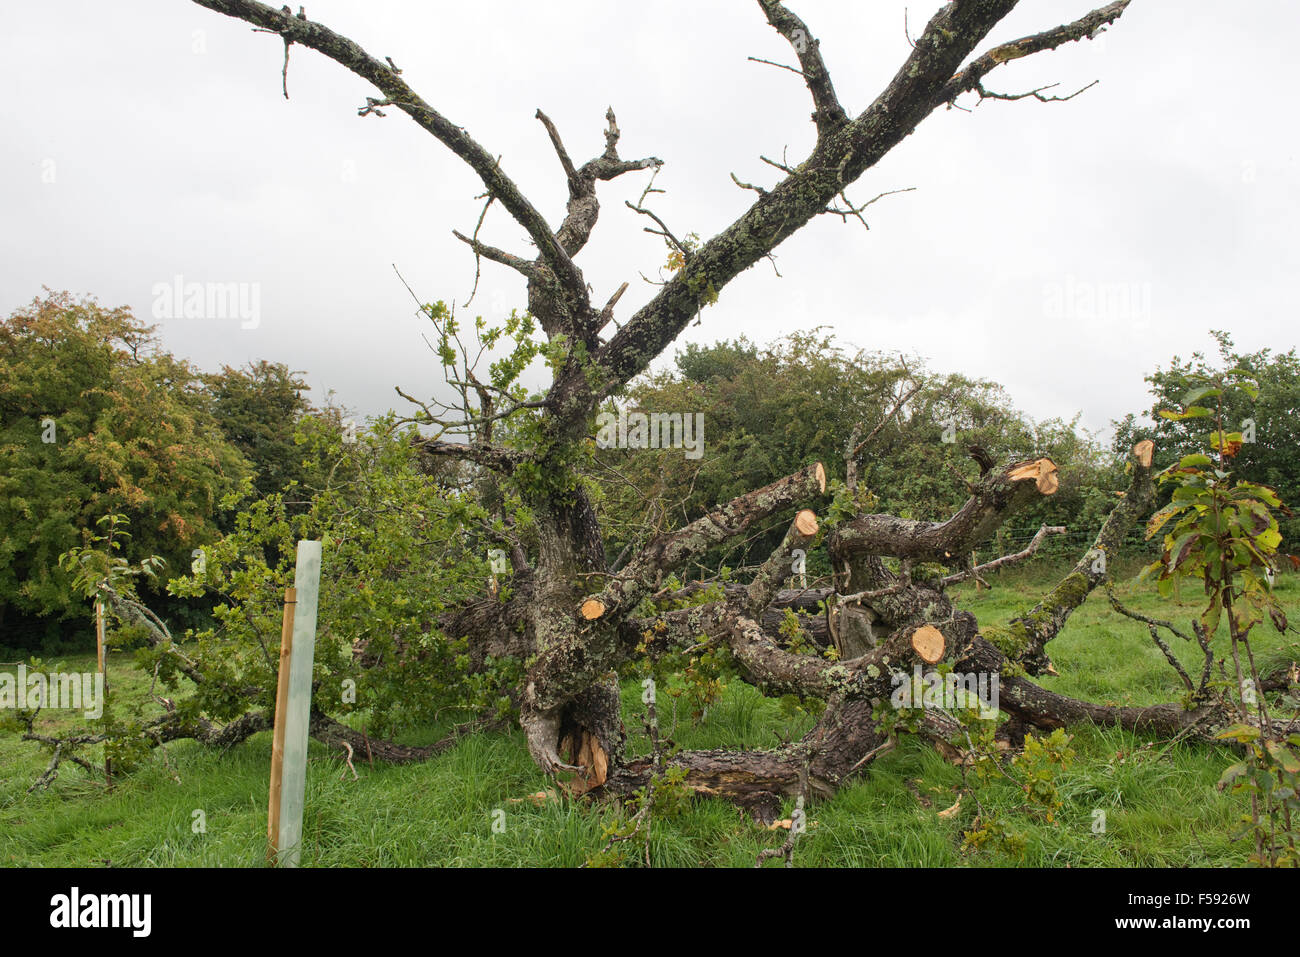 Fallen oak tree, Quercus robur, with sparse foliage rotten and killed by several fungal pathogens, Berkshire, September - Stock Image